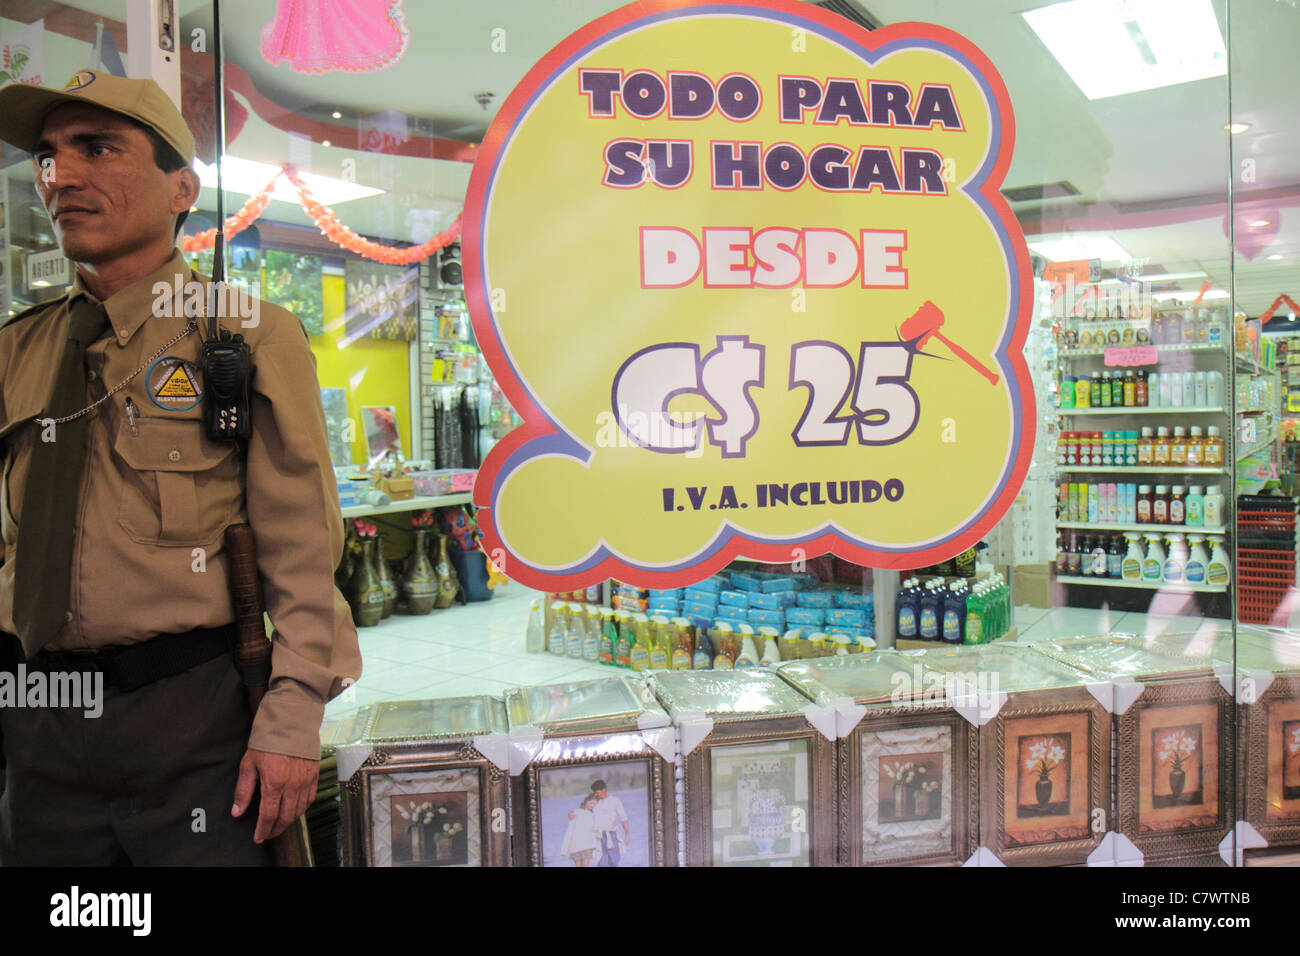 Managua Nicaragua Avenida Simon Bolivar Plaza Inter shopping general store retail display merchandise sign promotion - Stock Image